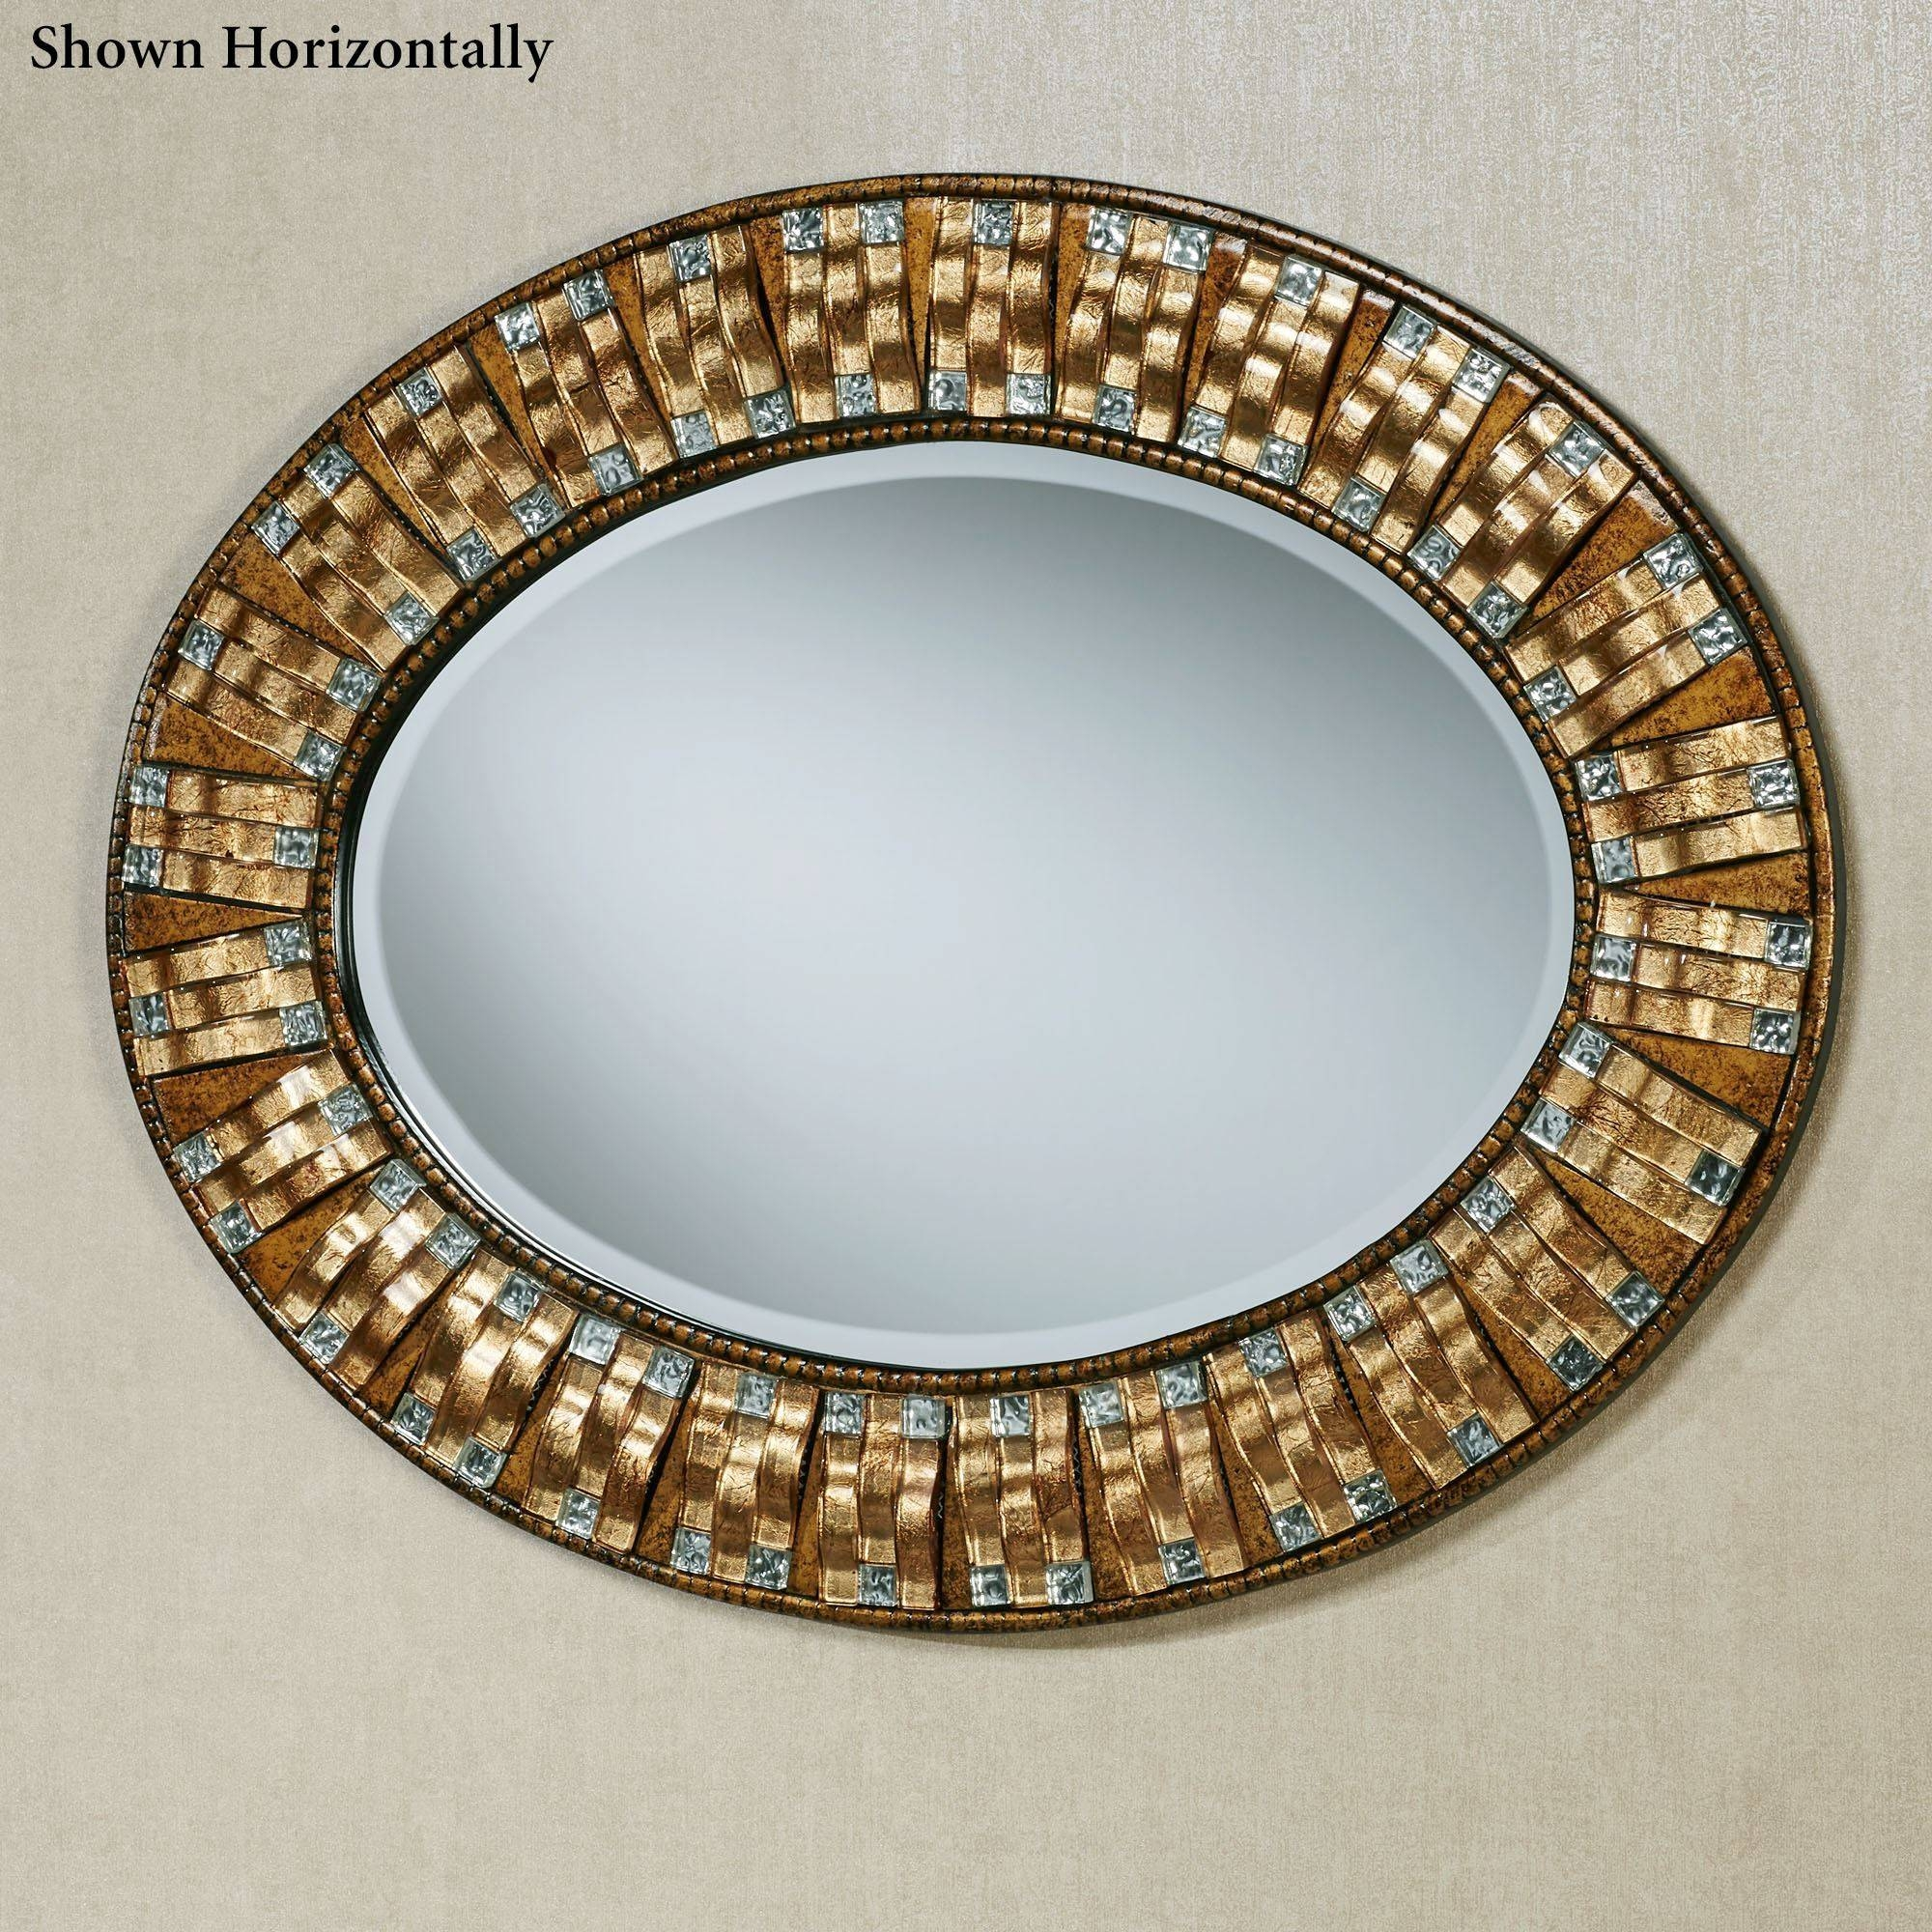 Maybelle Mosaic Oval Wall Mirror With Oval Wall Mirrors (View 16 of 25)